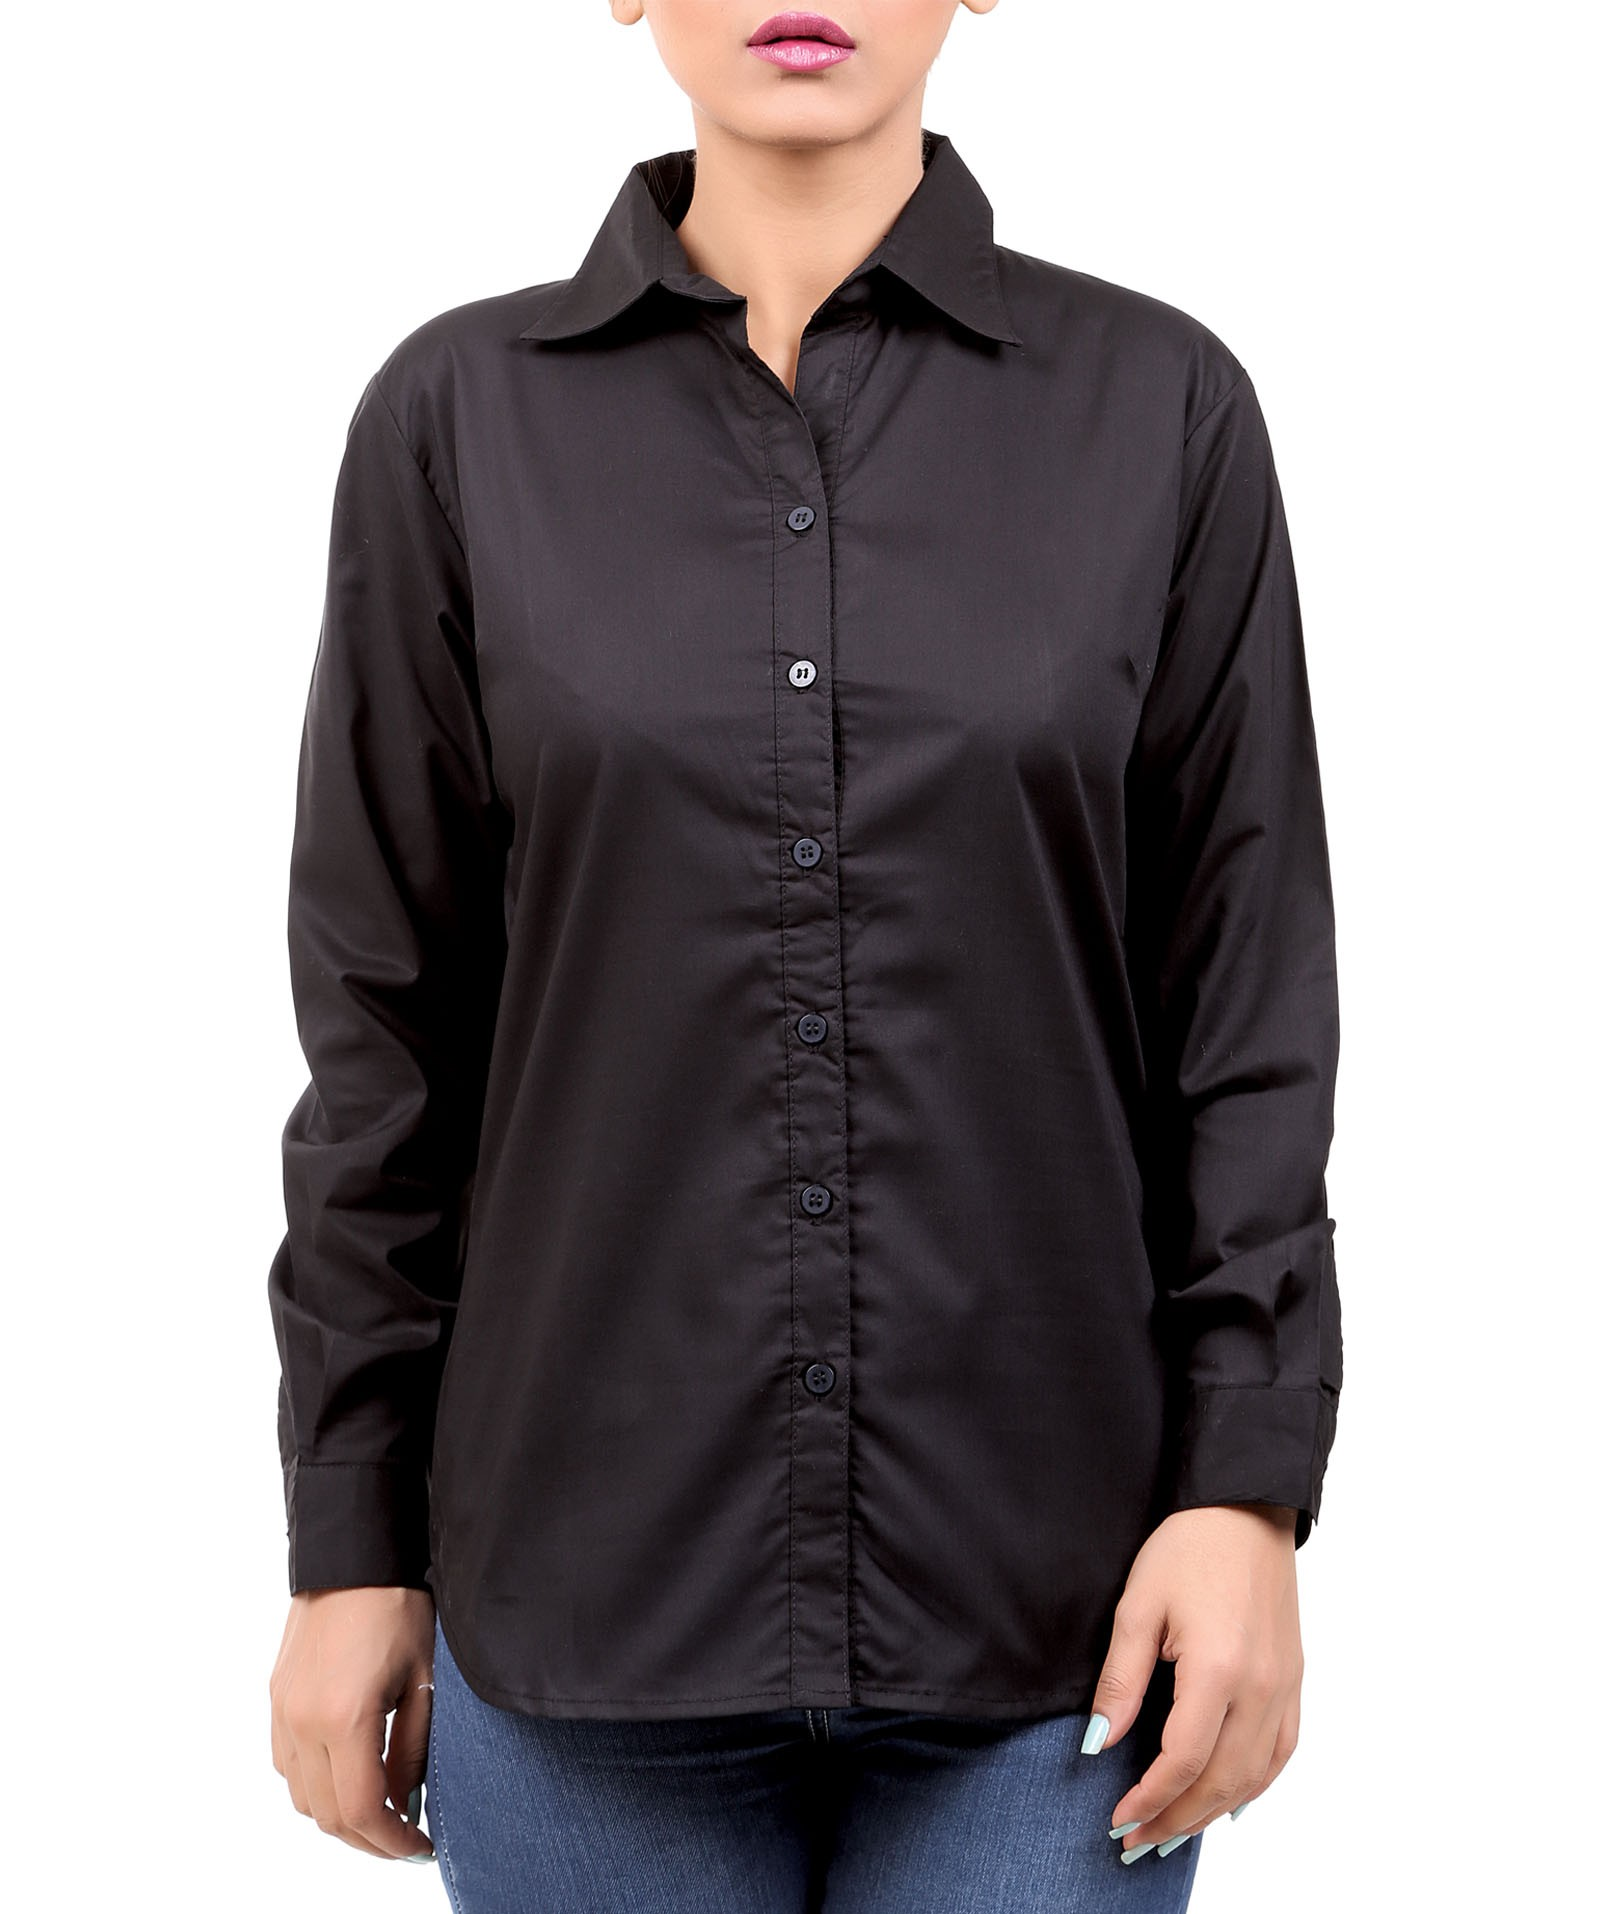 Urban-Culture-Shirts-Collection-2014-2015 (8)